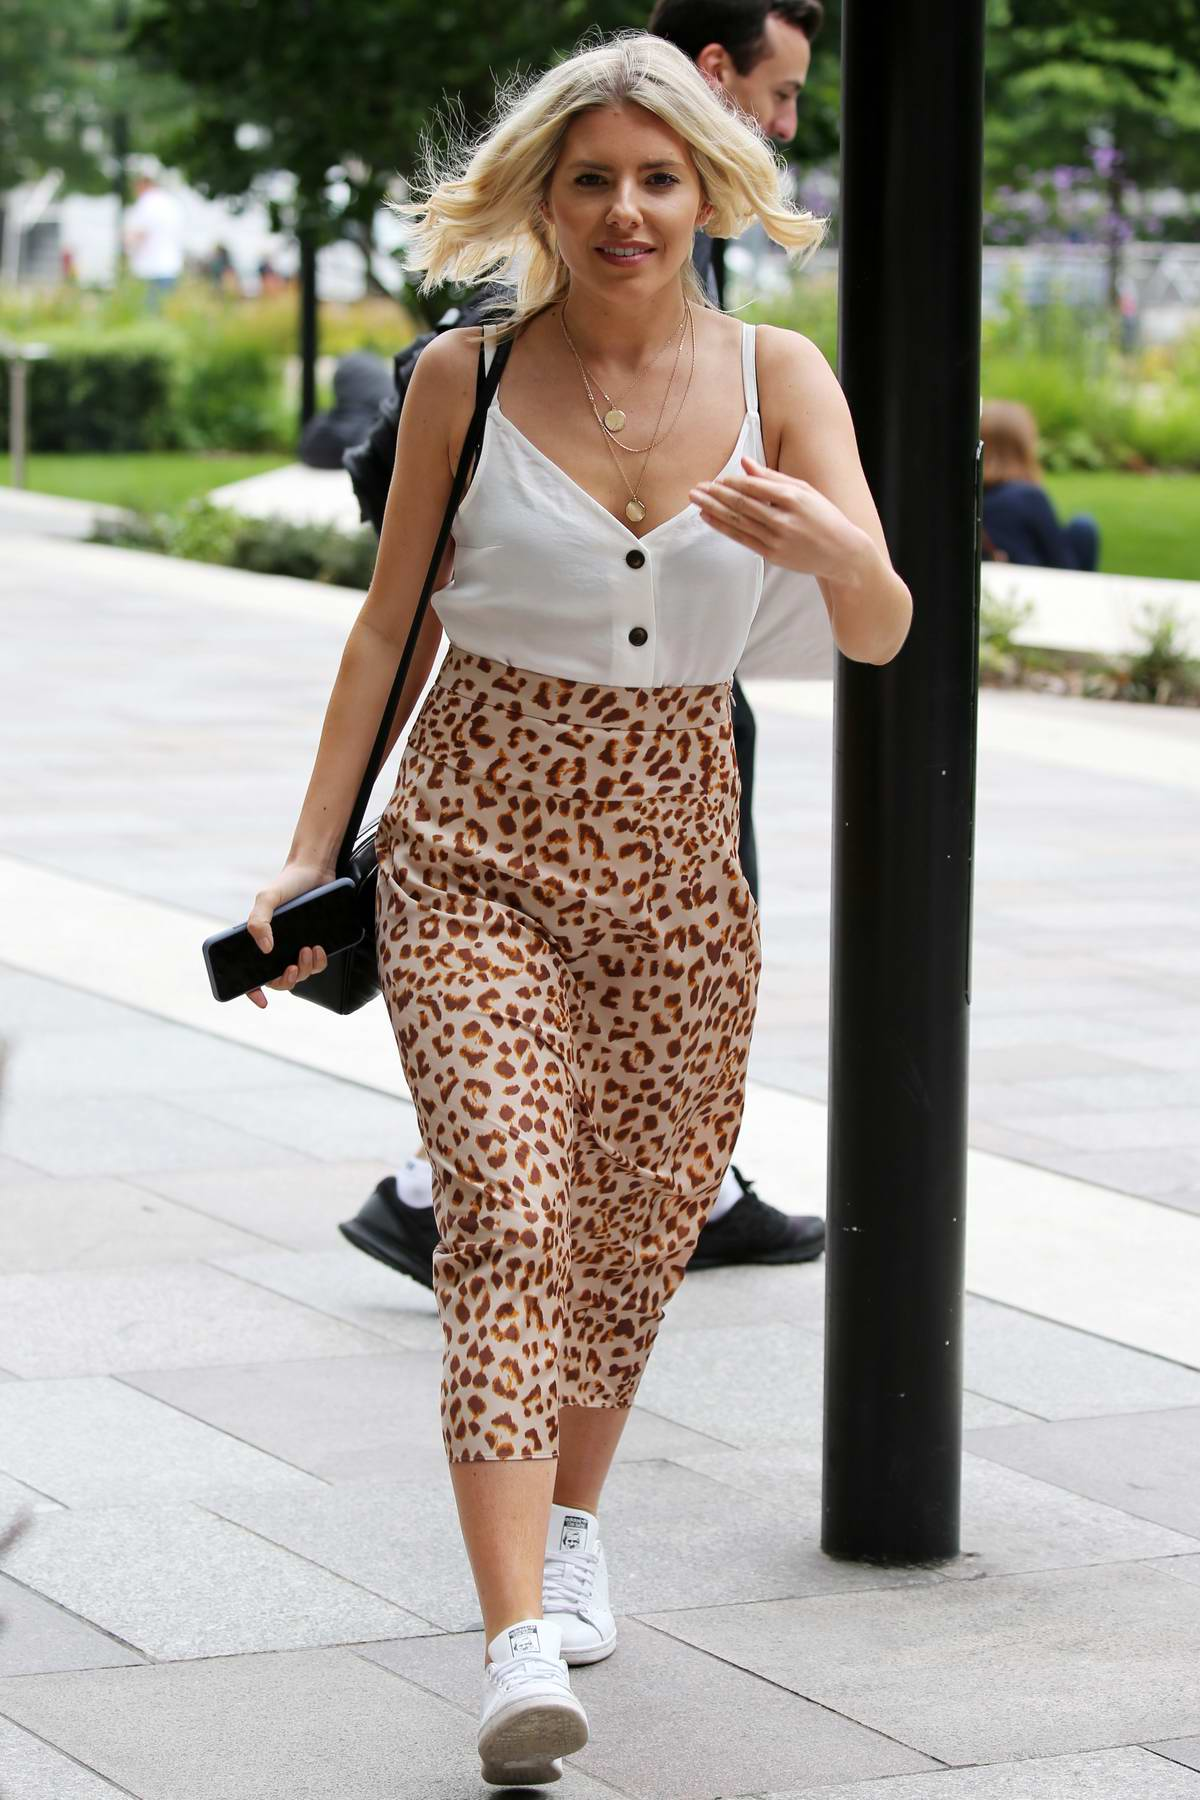 Mollie King wears a white camisole with leopard print skirt and sneakers as she arrives at ITV Studios in London, UK